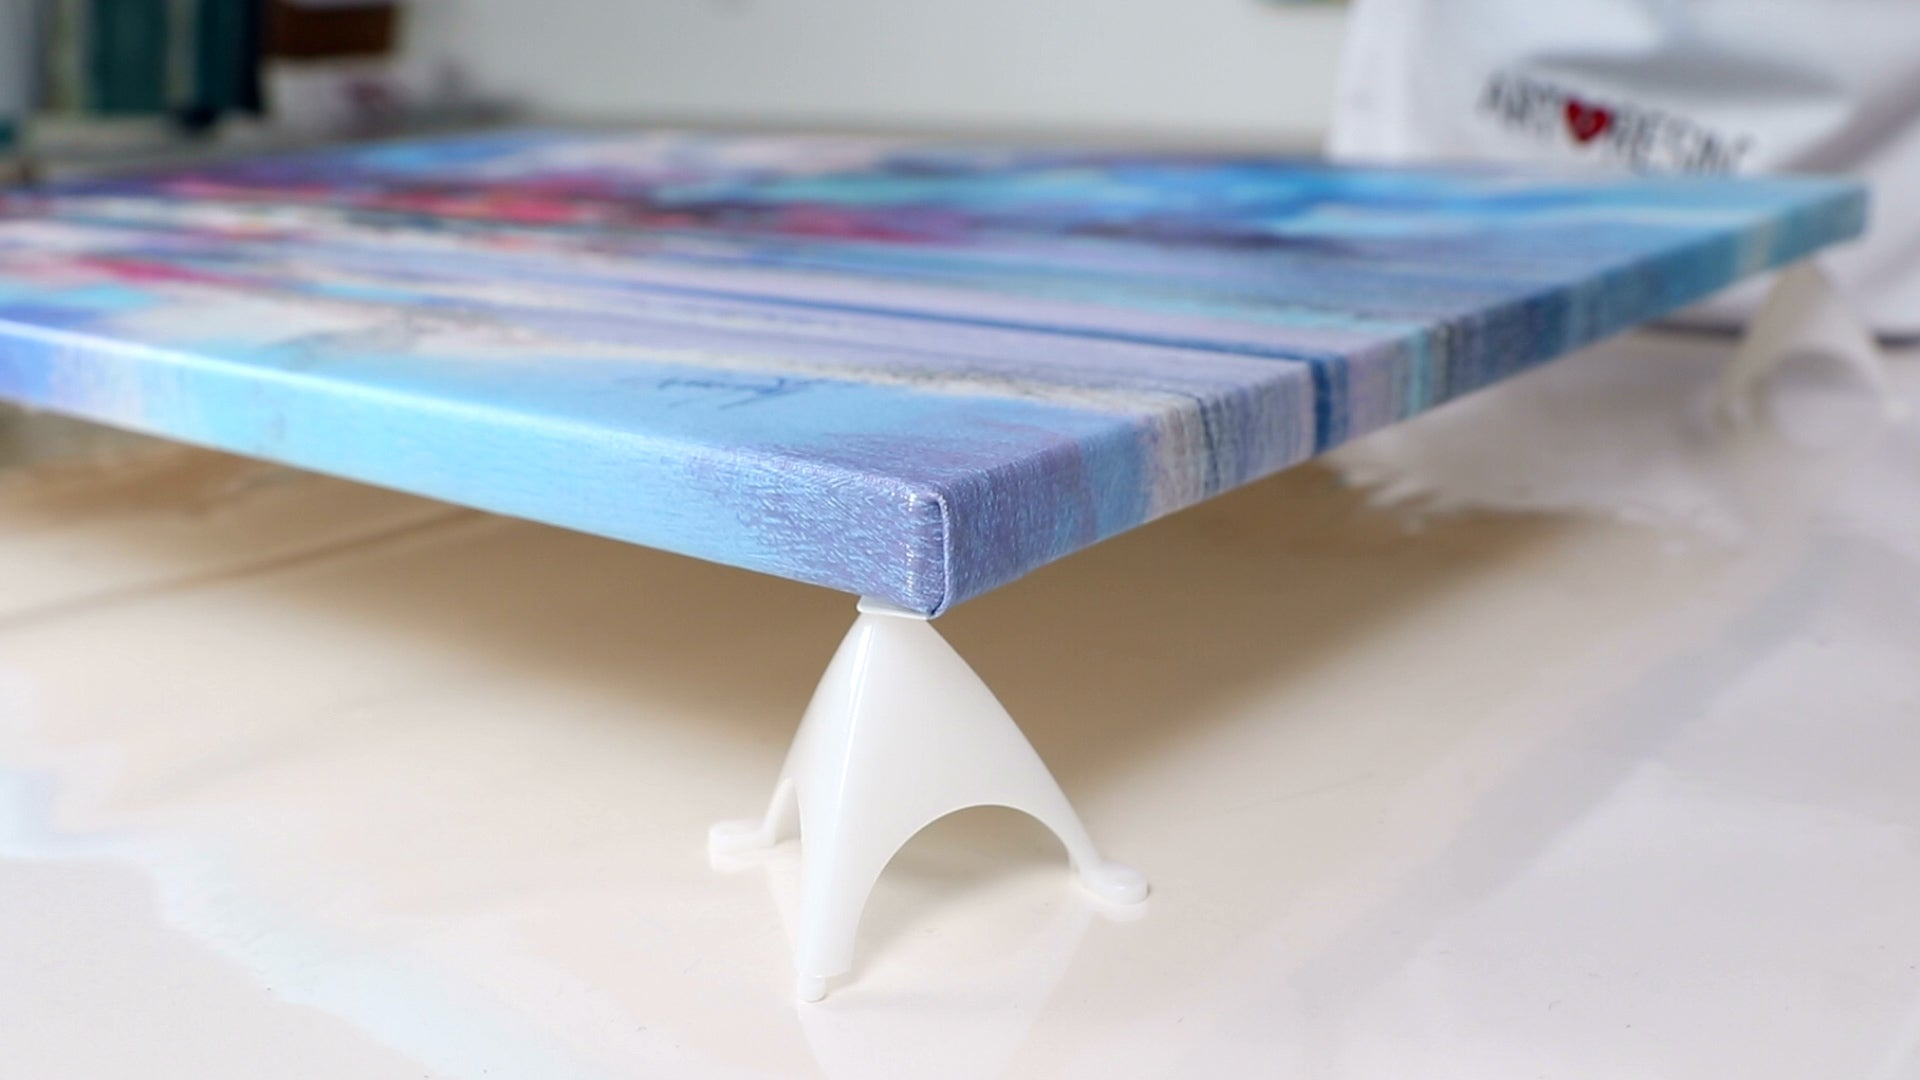 pyramid painters stands prop artwork up to resin